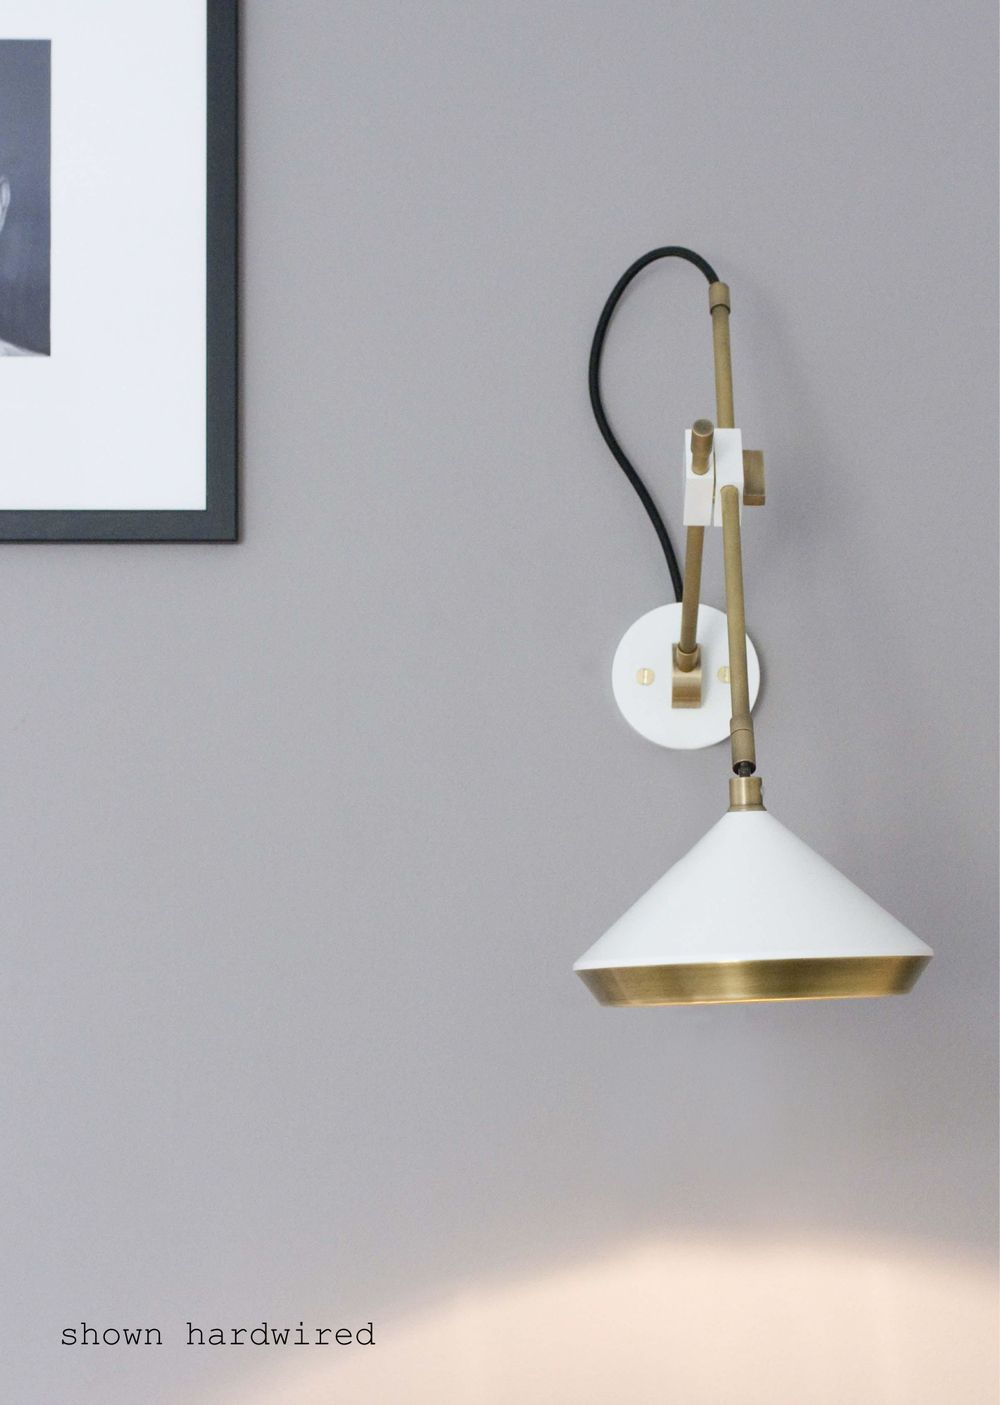 Shear Wall Light | Wall lights, Brass wall light, Wall lamp on Non Wired Wall Sconces id=64437